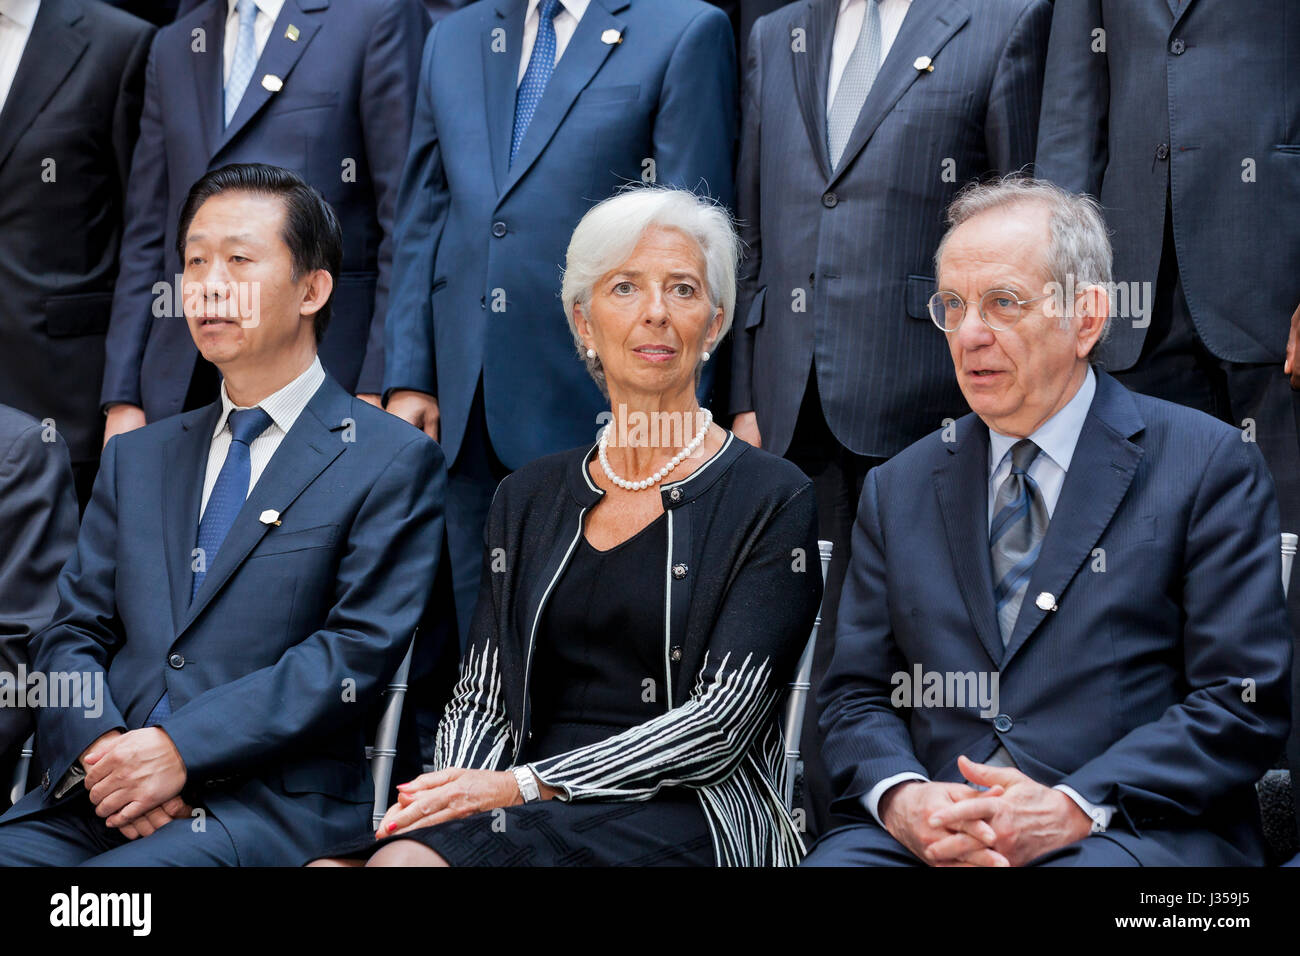 Xiao Jie, China Minister of Finance, Christine Lagarde, IMF Managing Director, and Pier Carlo Padoan, Italian Minister - Stock Image